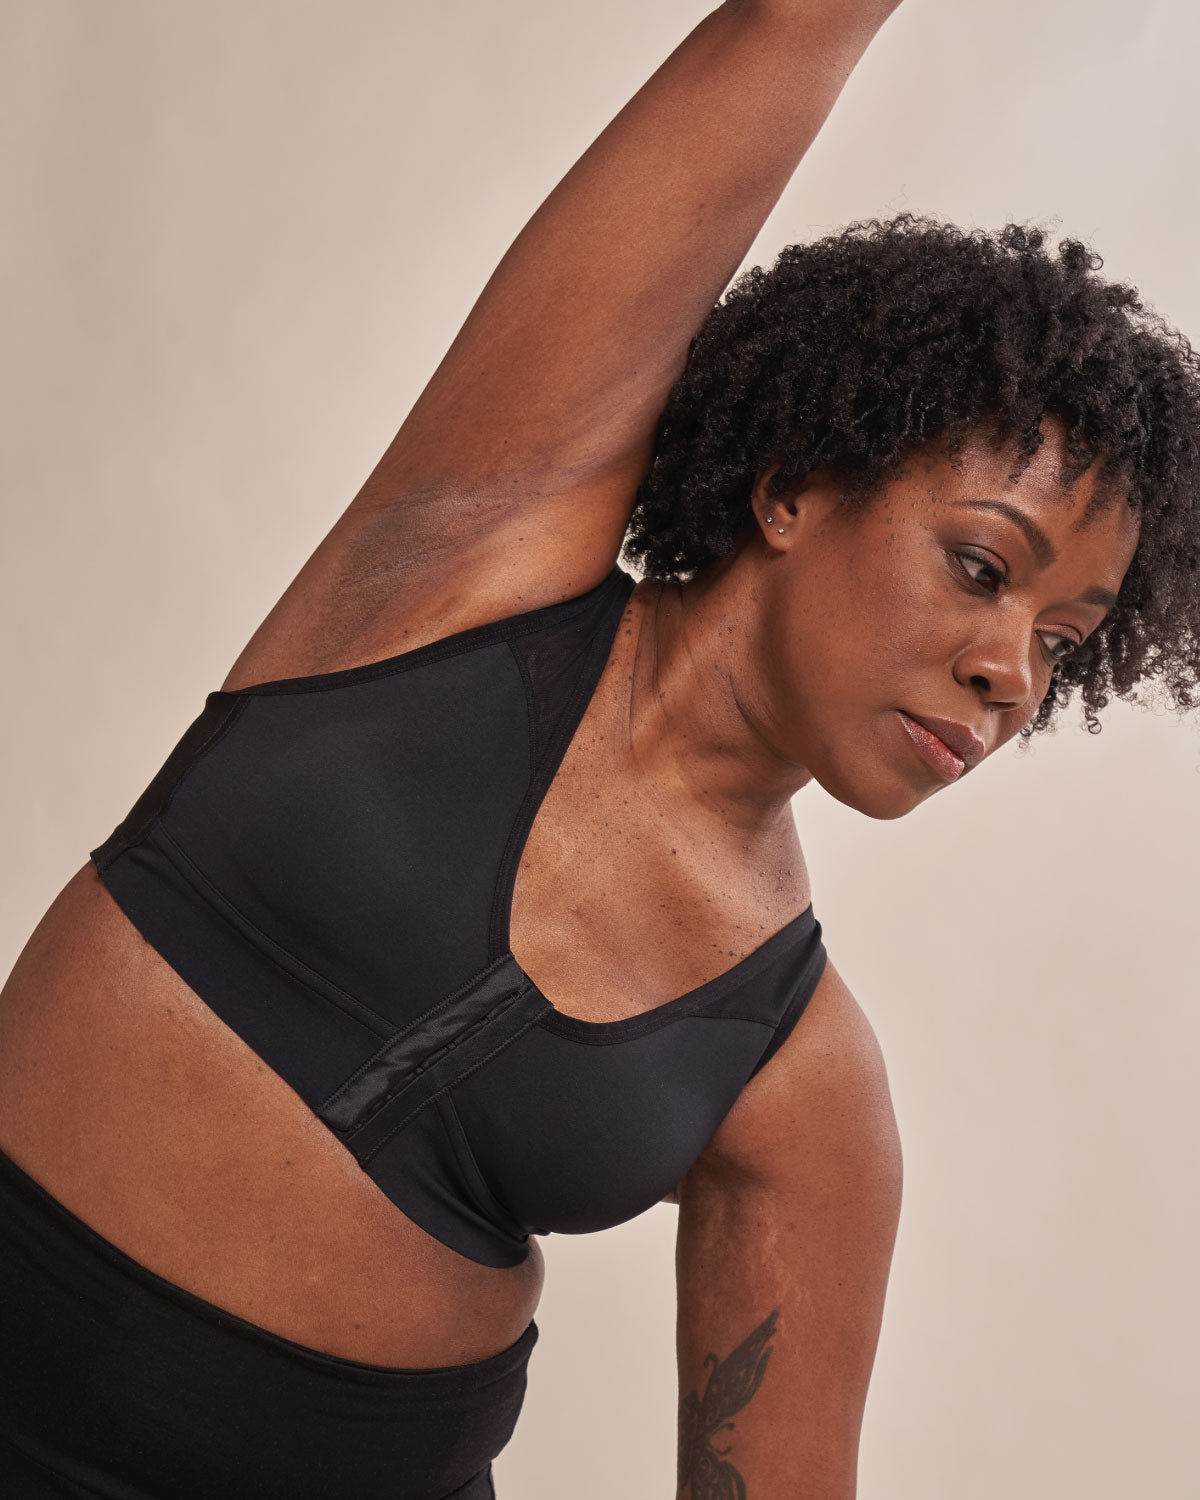 Black, pocketed front closure sports bra with adjustable straps, mesh paneling on cross back, soft material and wireless cups on flap reconstruction model.